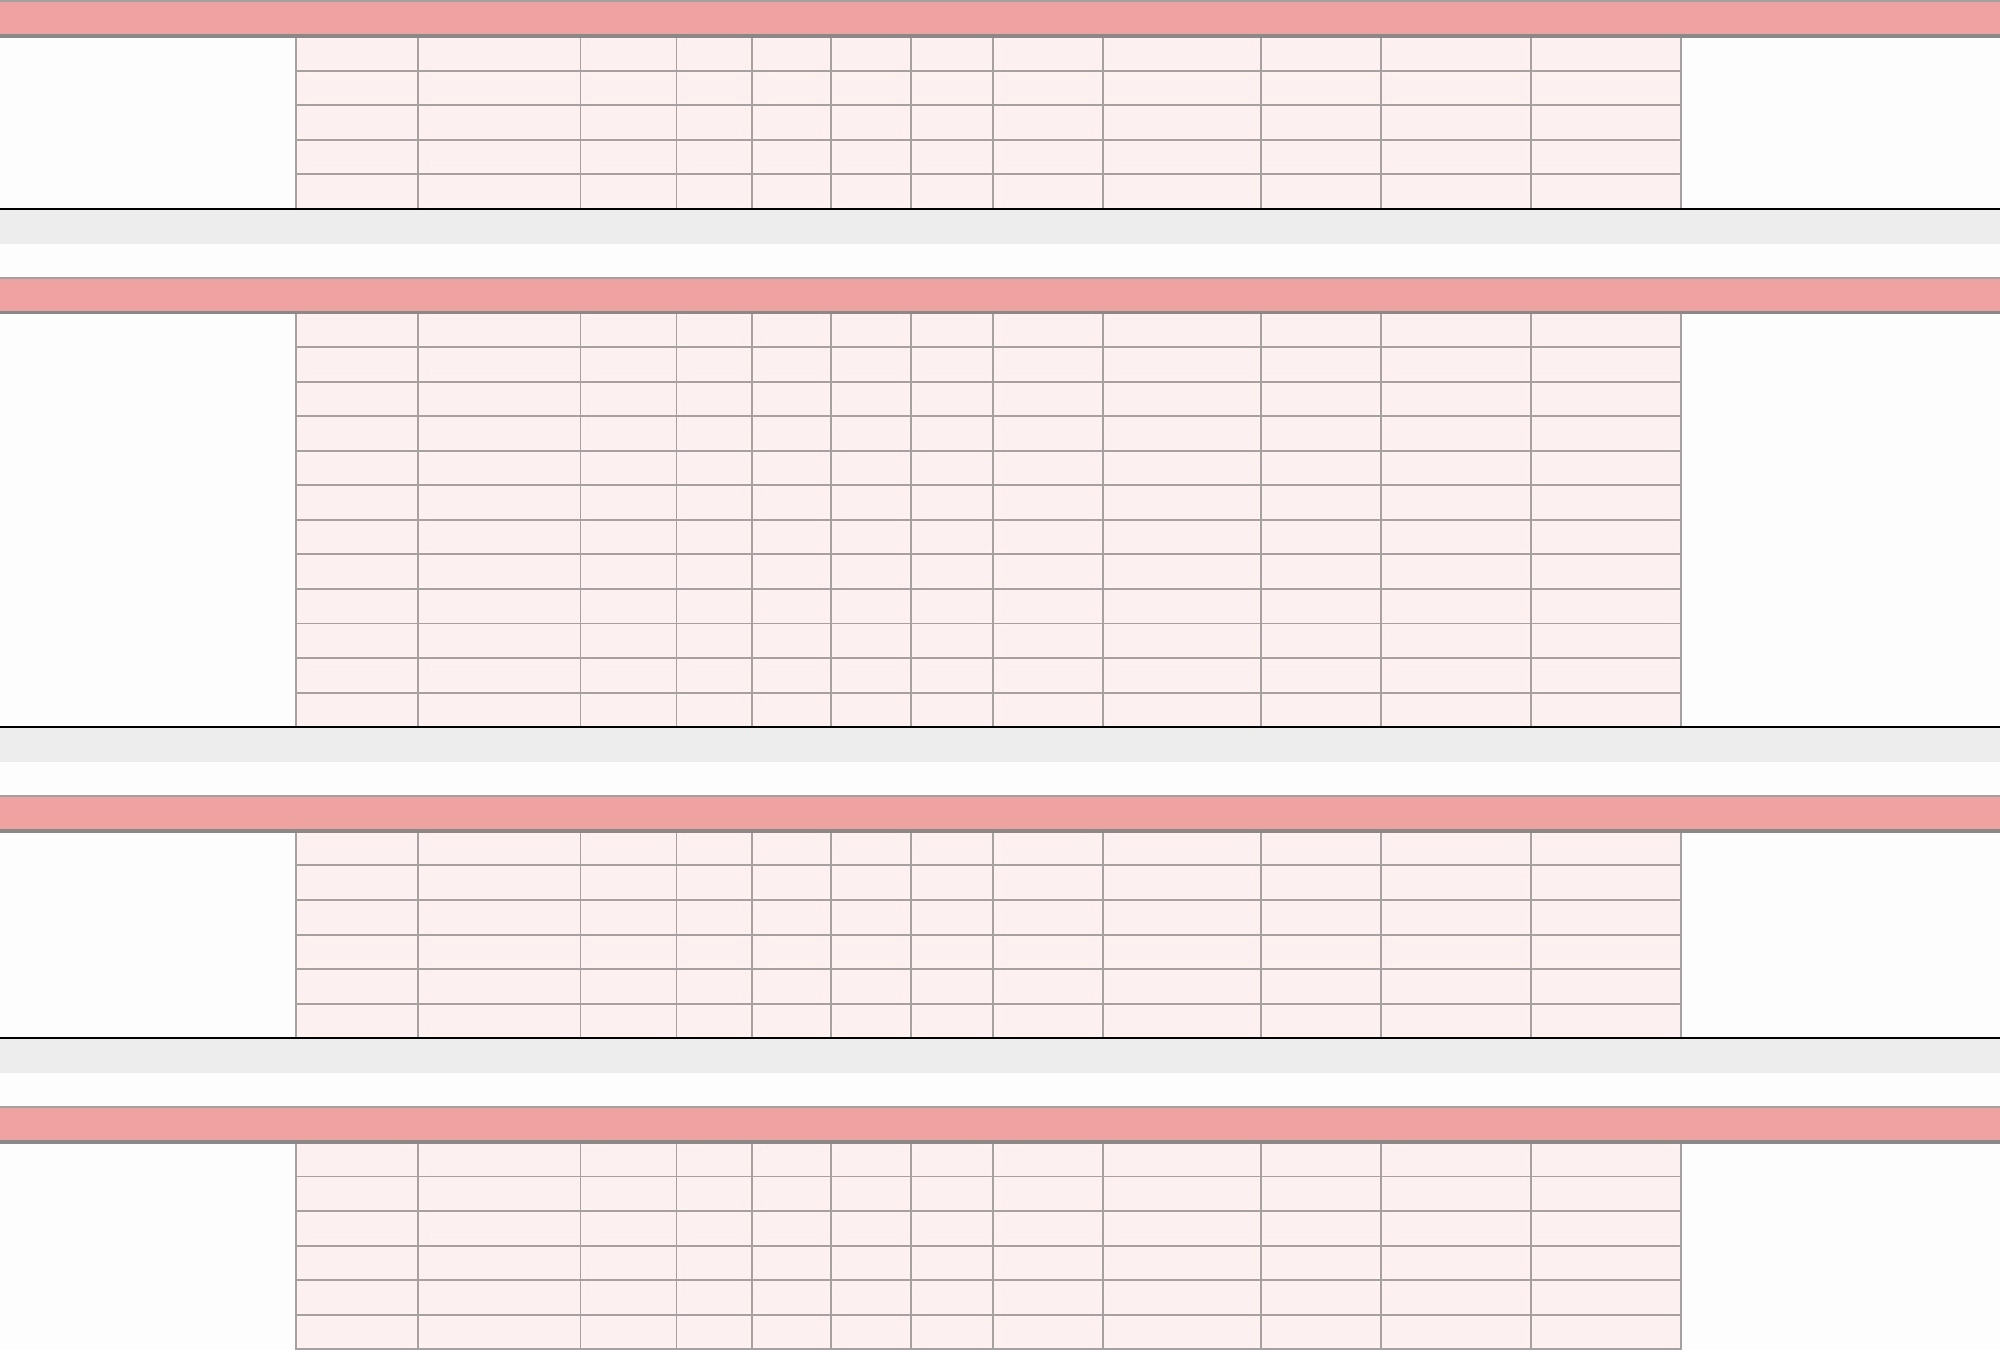 Dave Ramsey Budget Spreadsheet Pertaining To Form